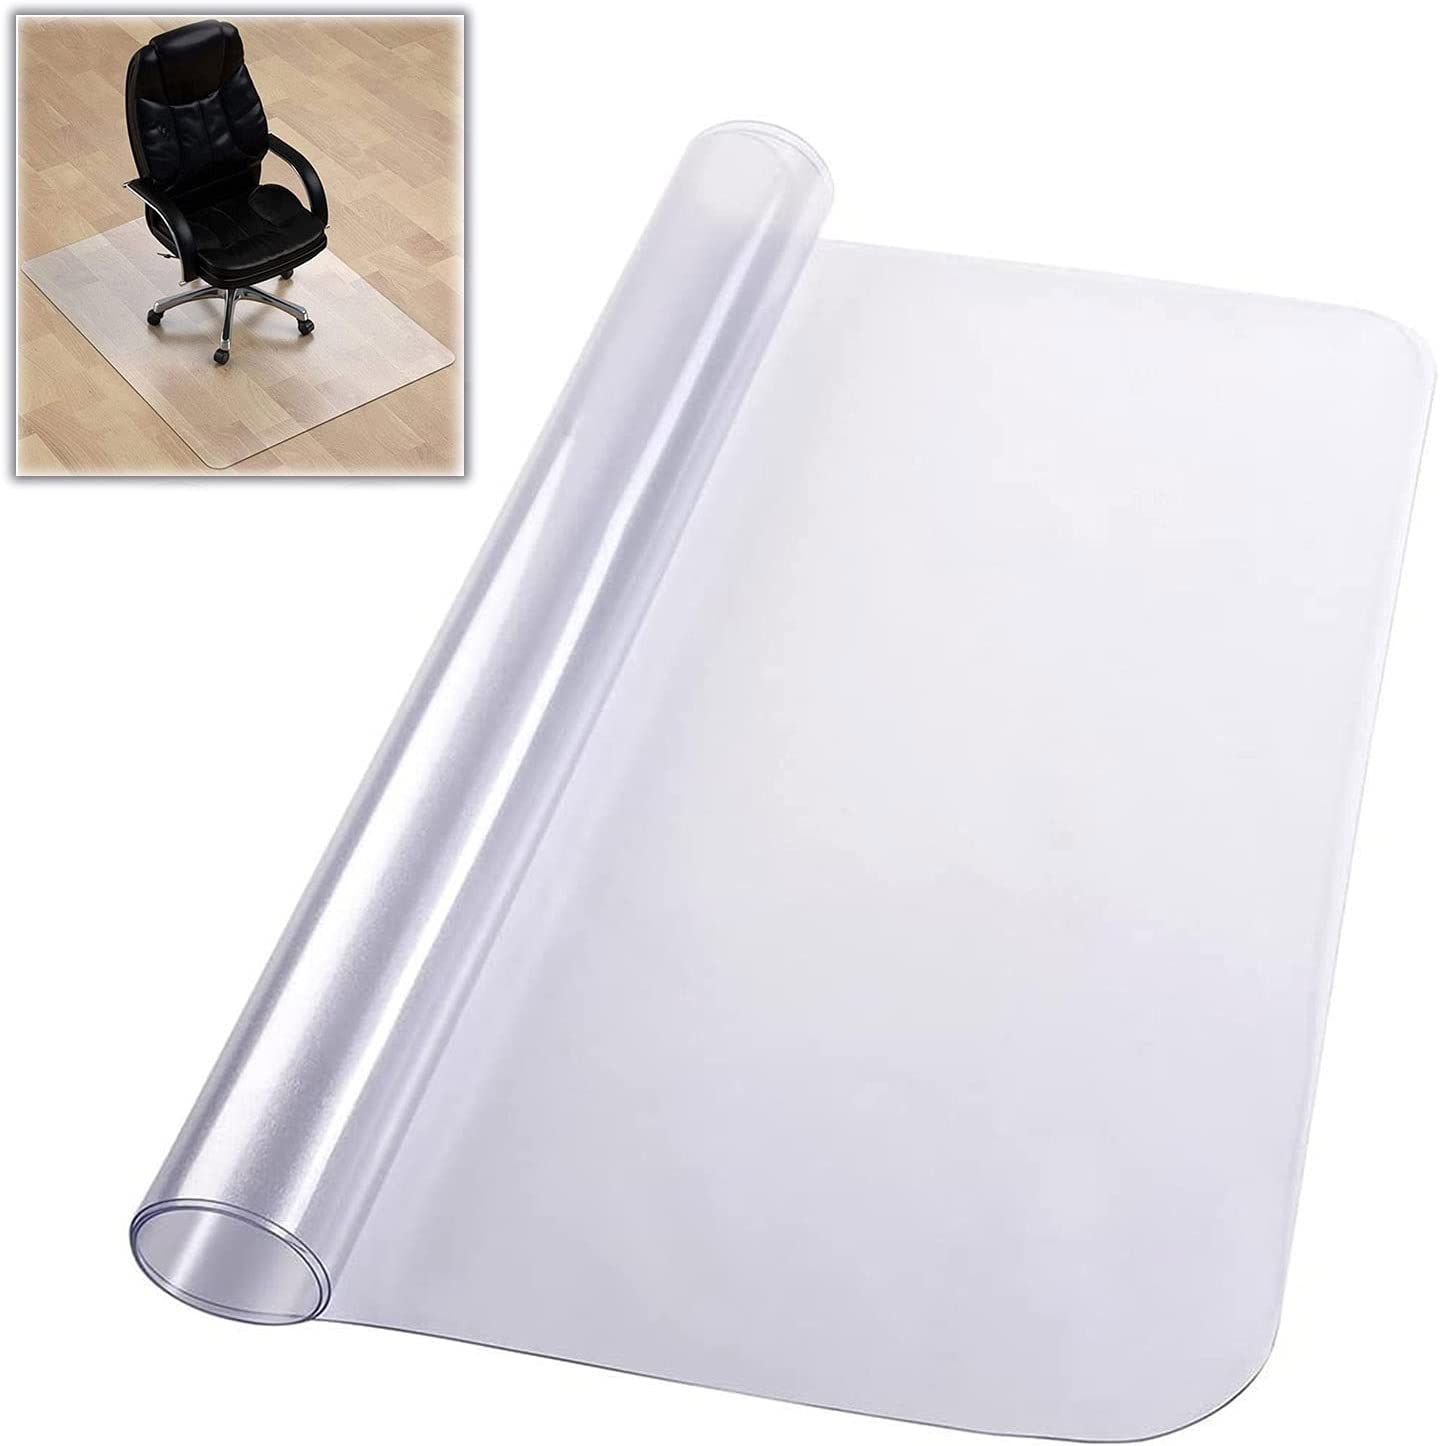 security sql Clear Chair mat for Hard Non-S Transparent service Floors Floor Mats